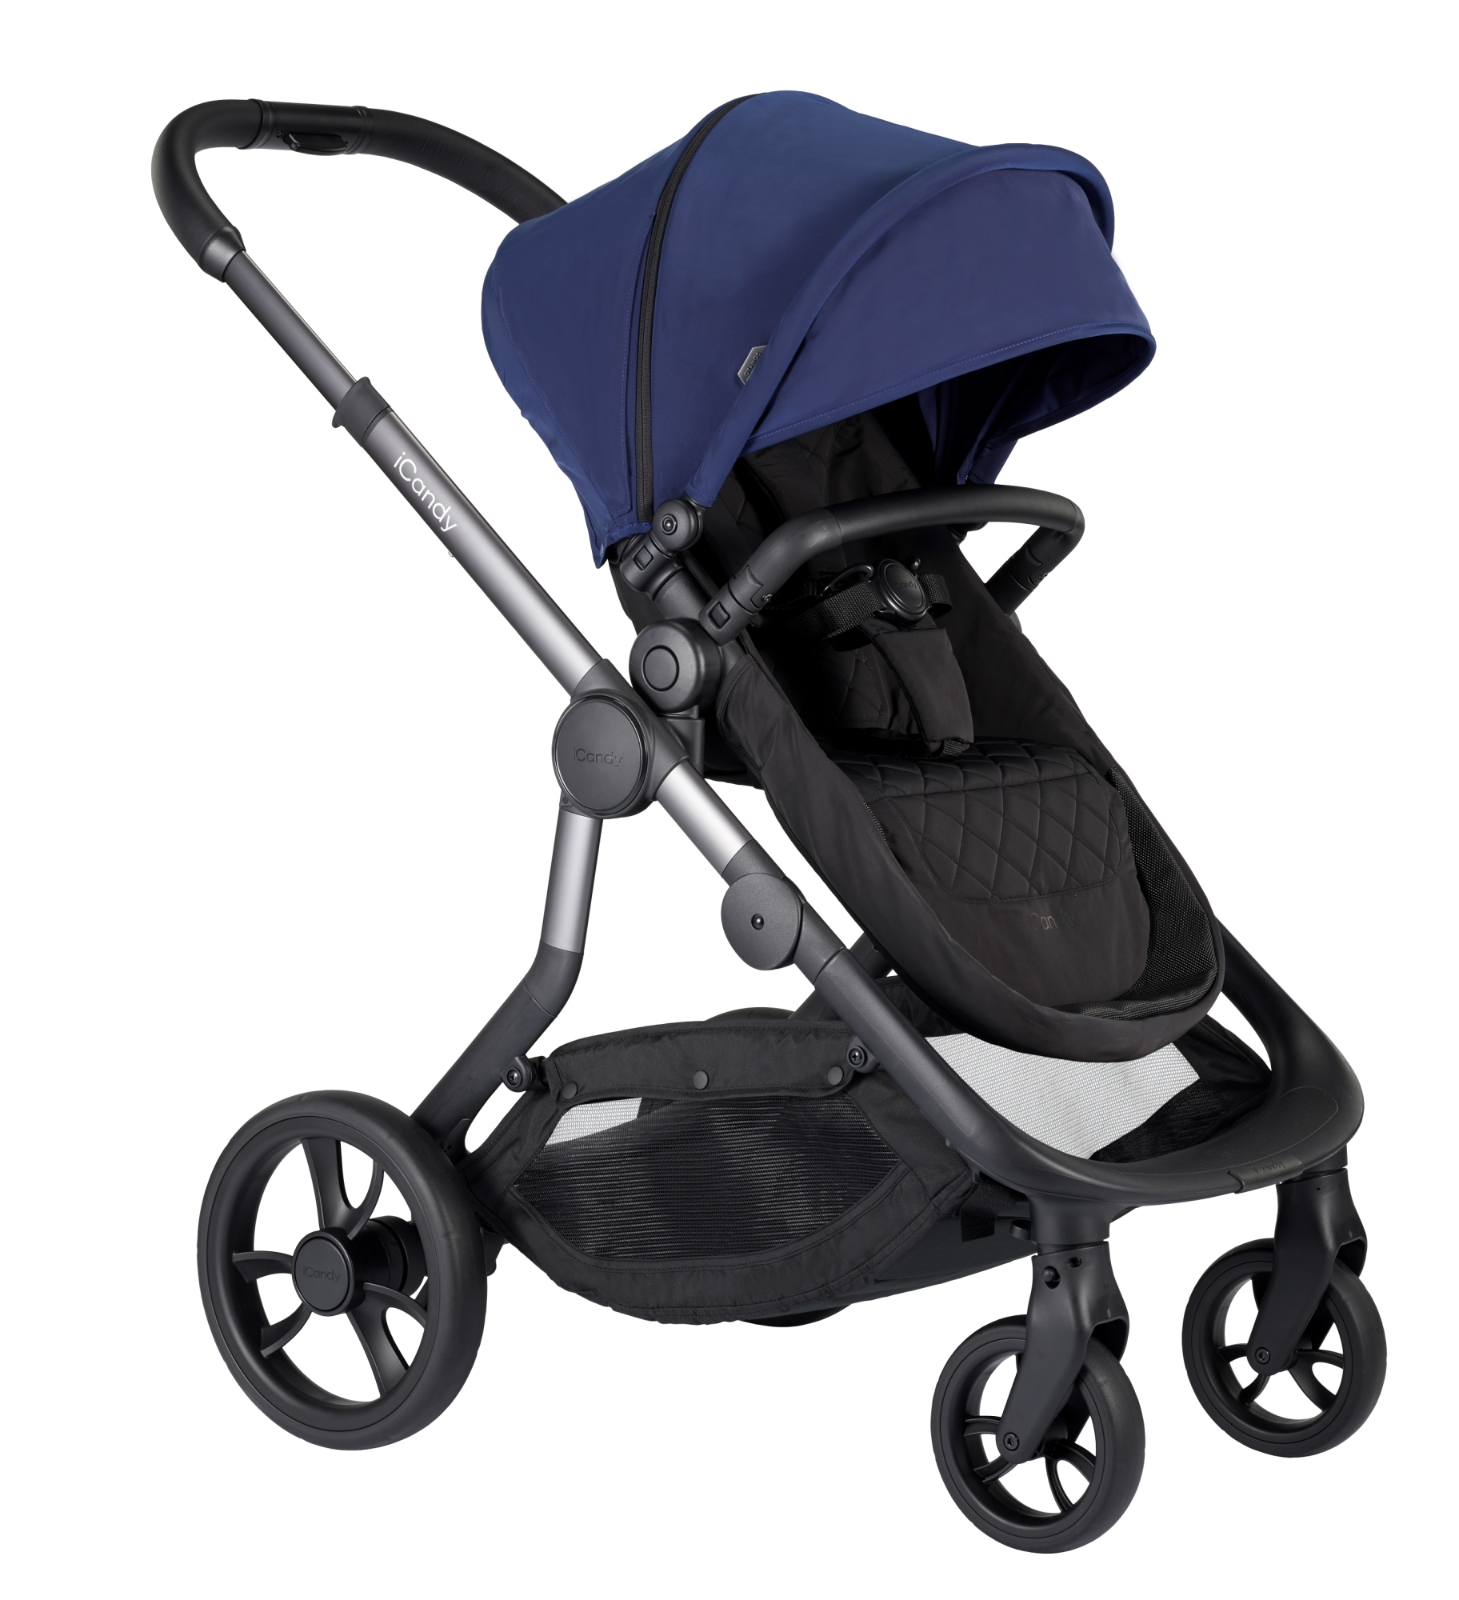 iCandy Orange Pushchair & Carrycot - Indigo